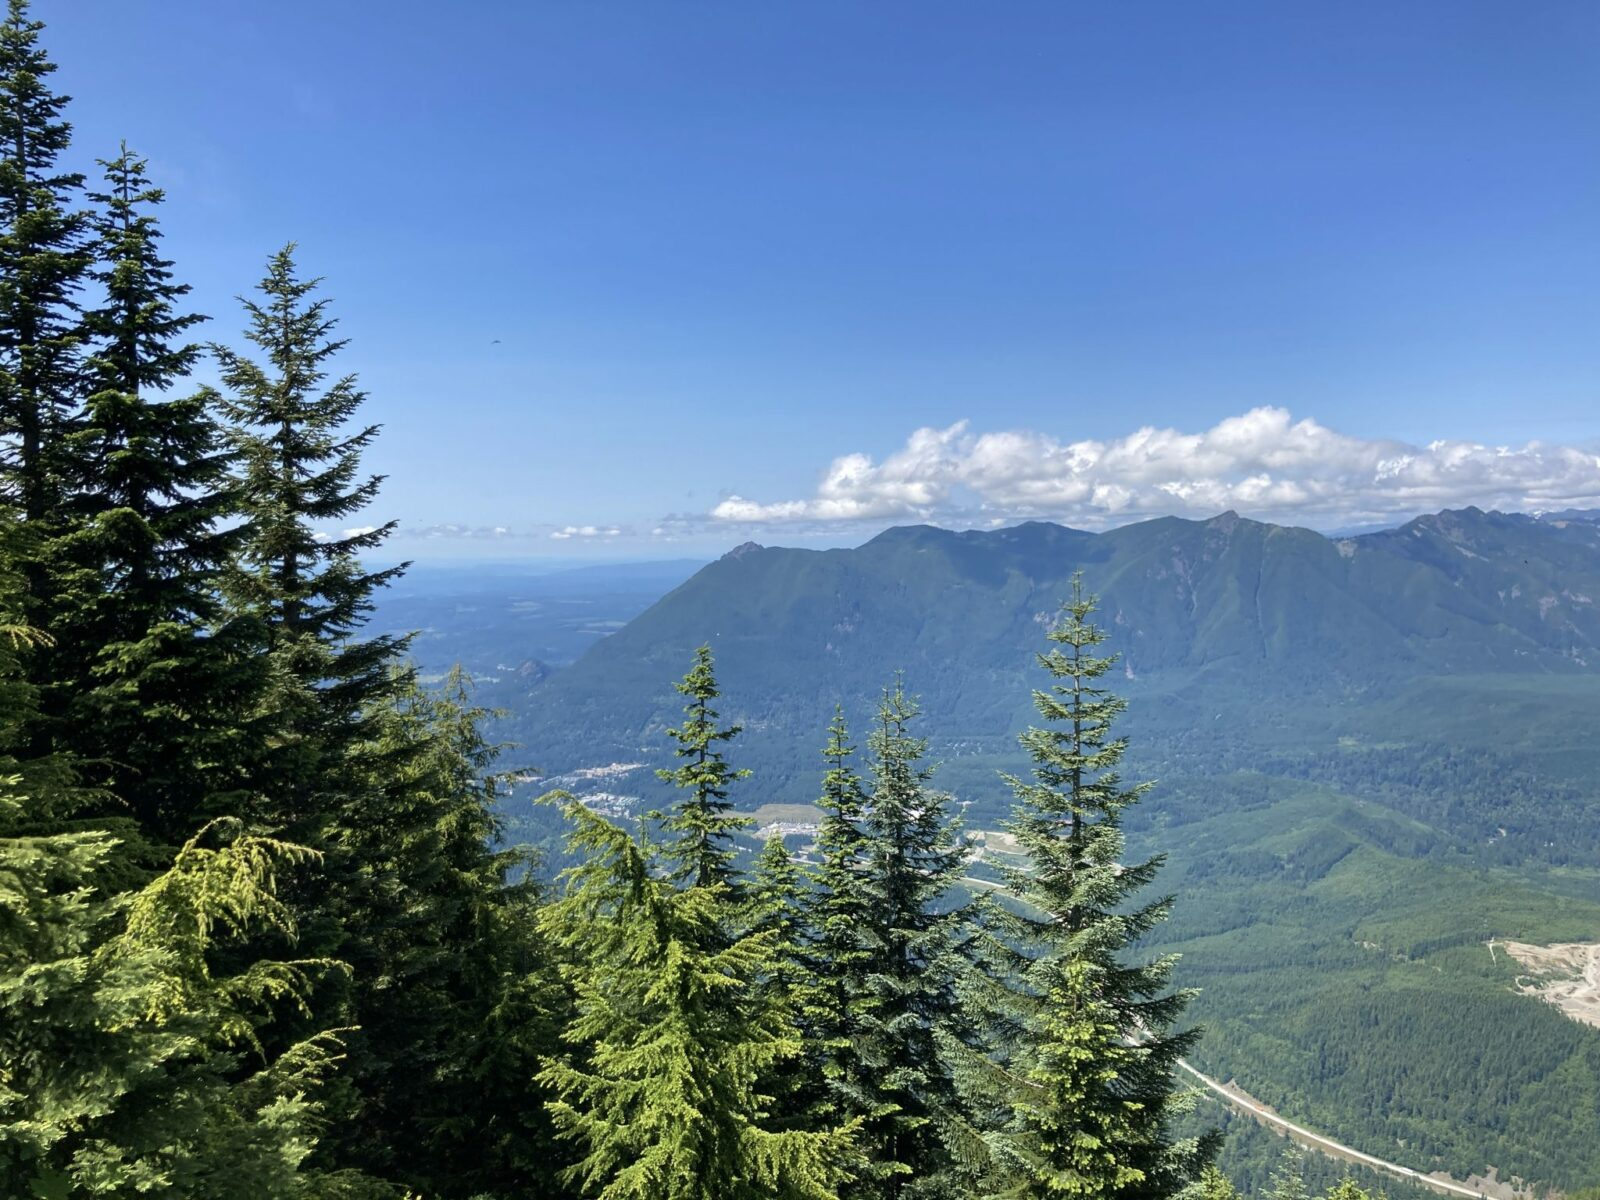 View from Mt Washington of the Snoqualmie Valley and North Bend and Mt Si in the distance. Mt Si is a forested high mountain with many others around it. Tere are evergreen trees in the foreground